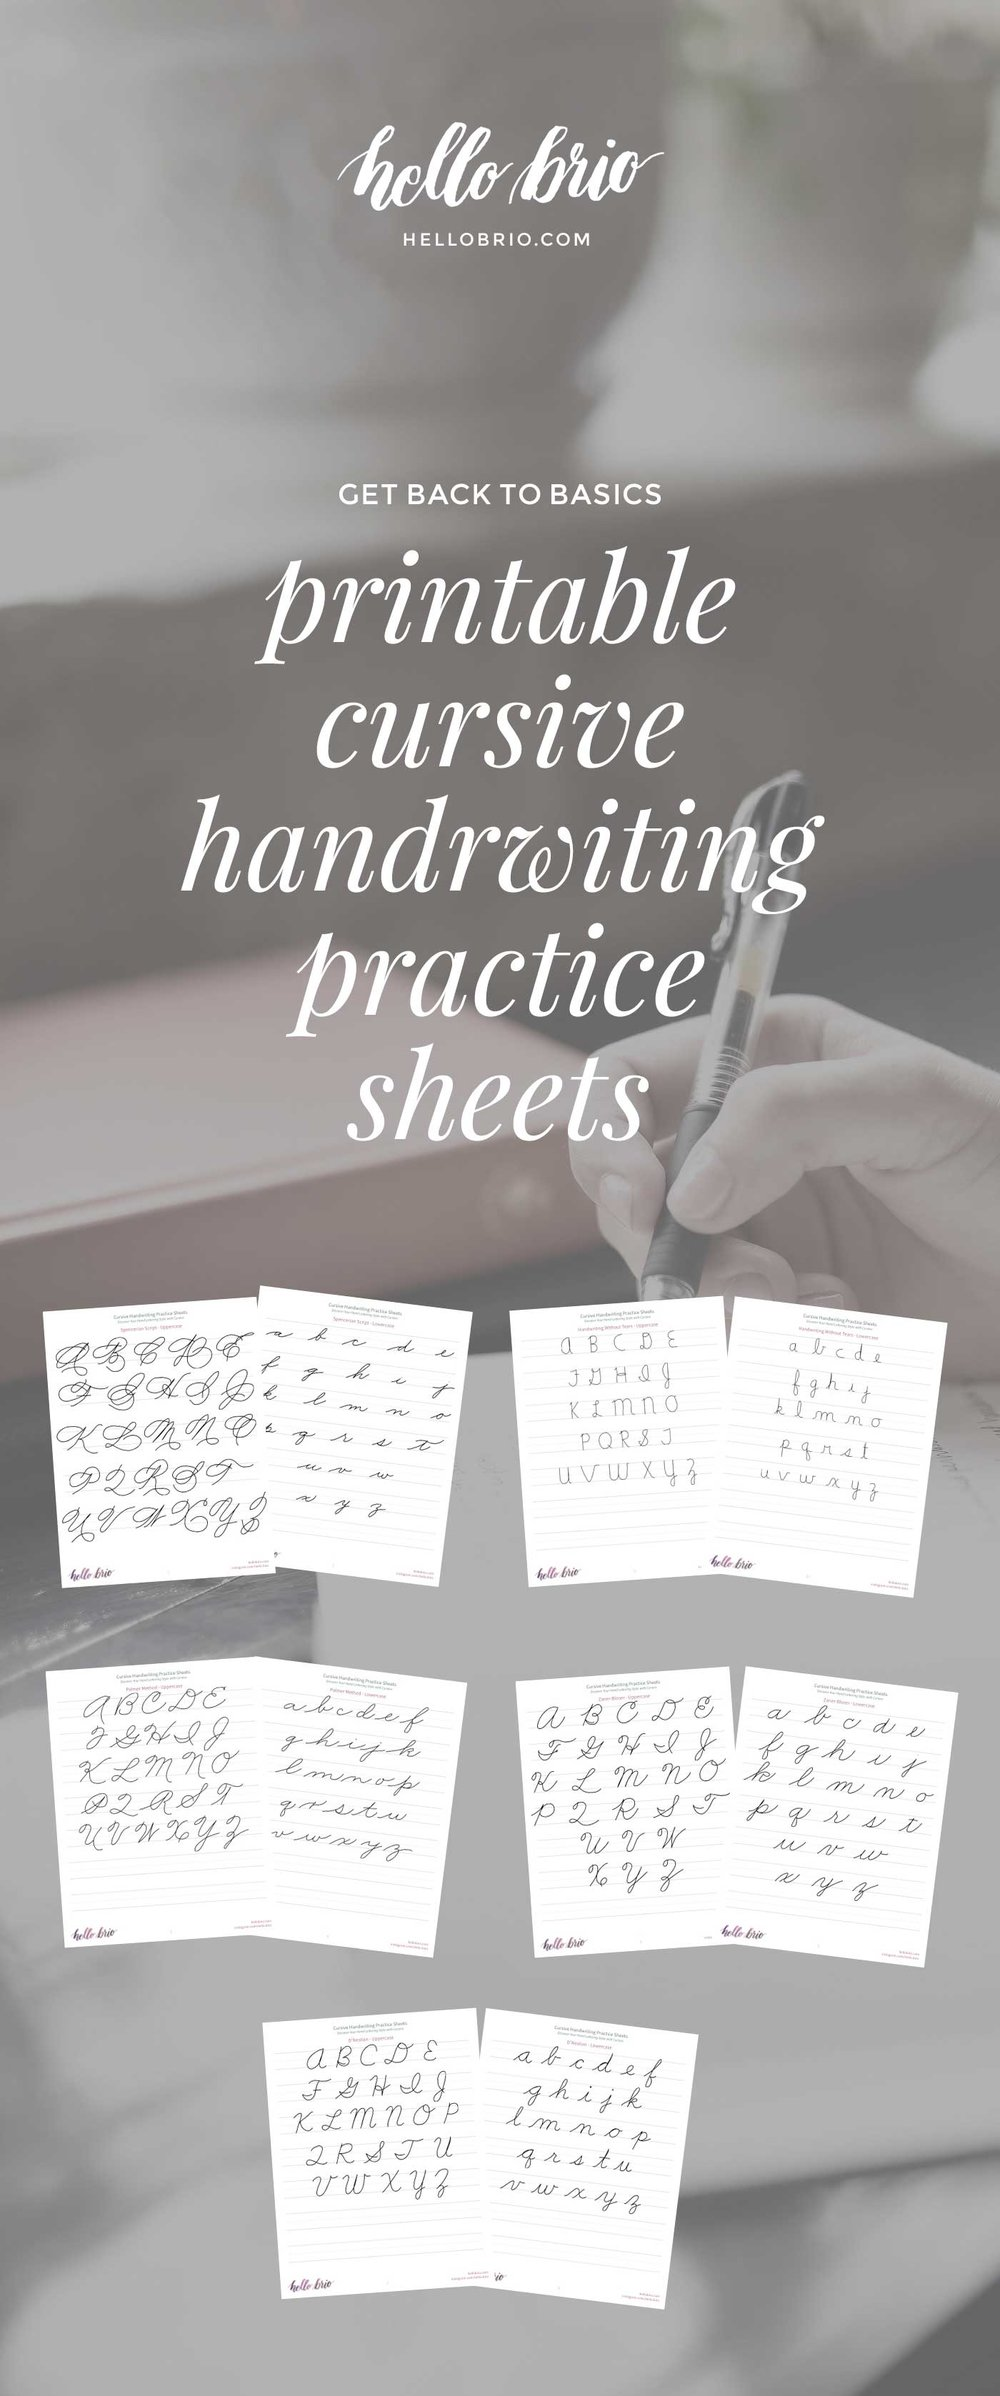 Printable cursive handwriting worksheets available at Hello Brio